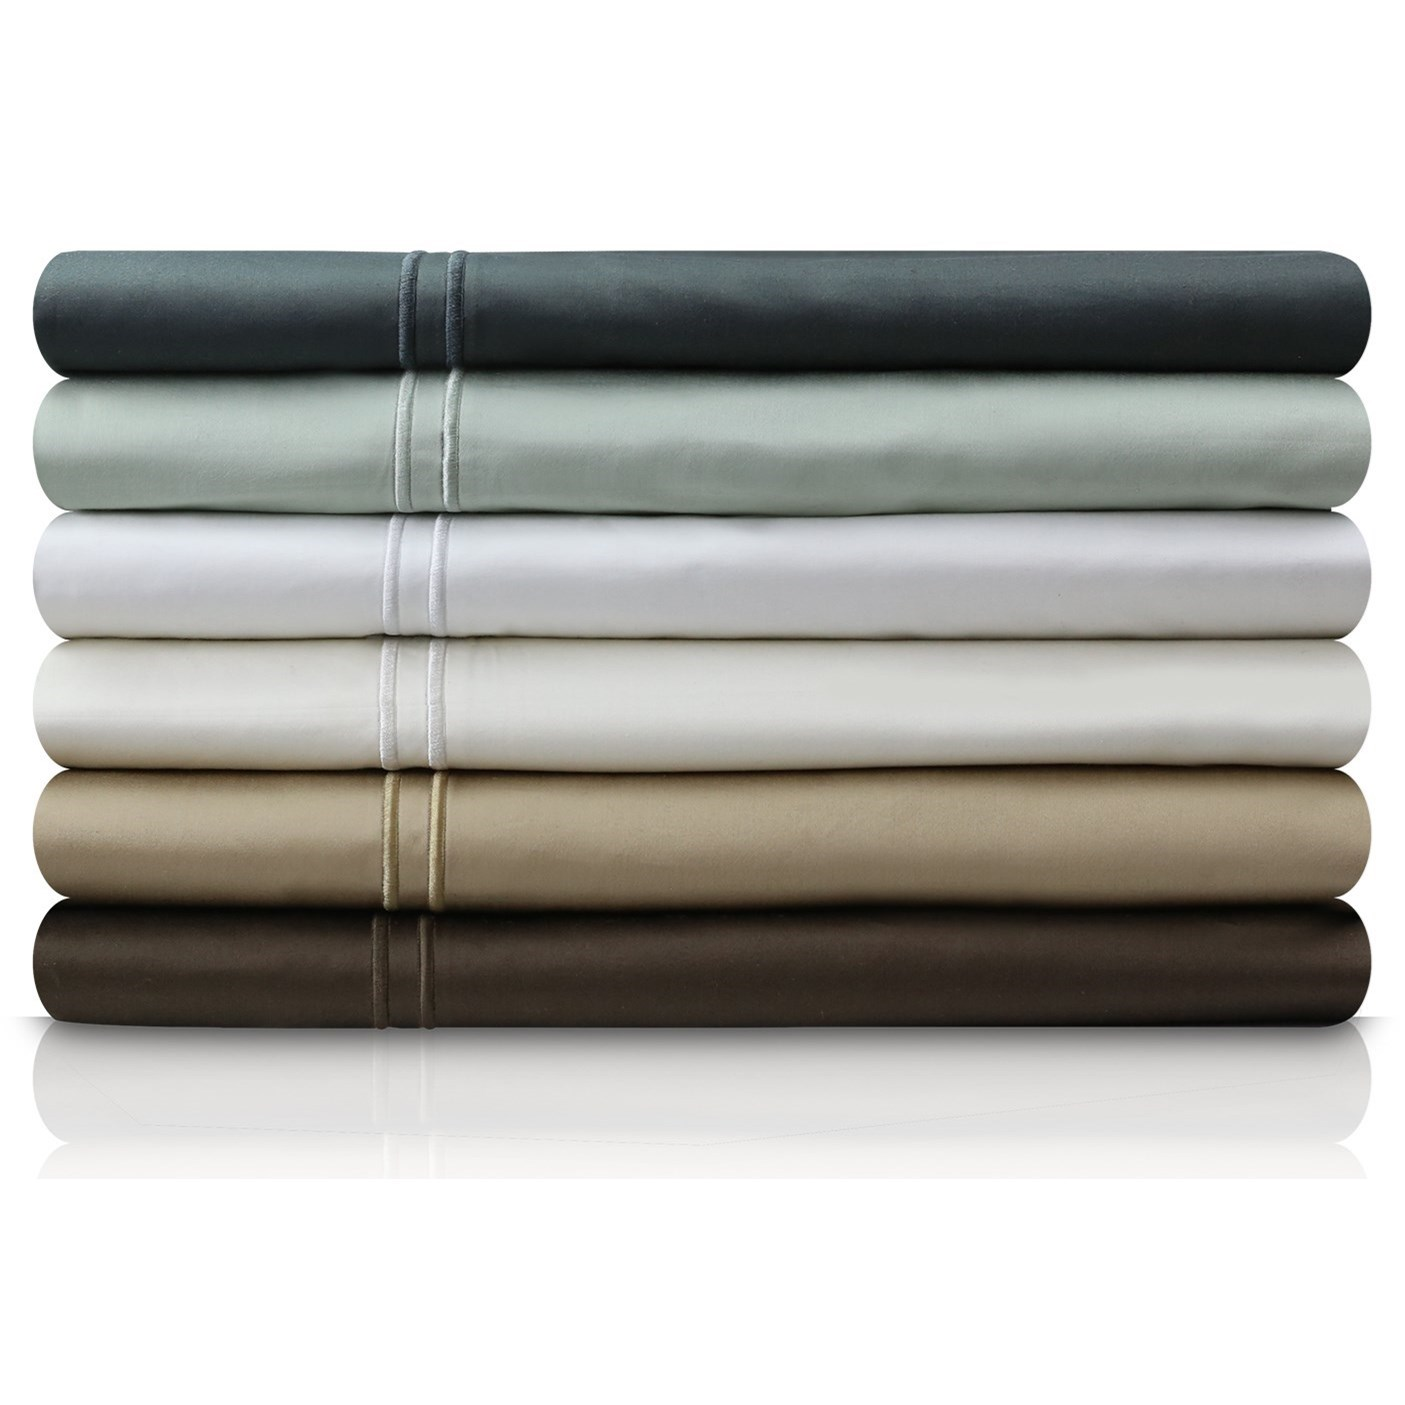 Malouf Egyptian Cotton Queen 600 TC Egyptian Cotton Pillowcases  - Item Number: MA06QQSIPC